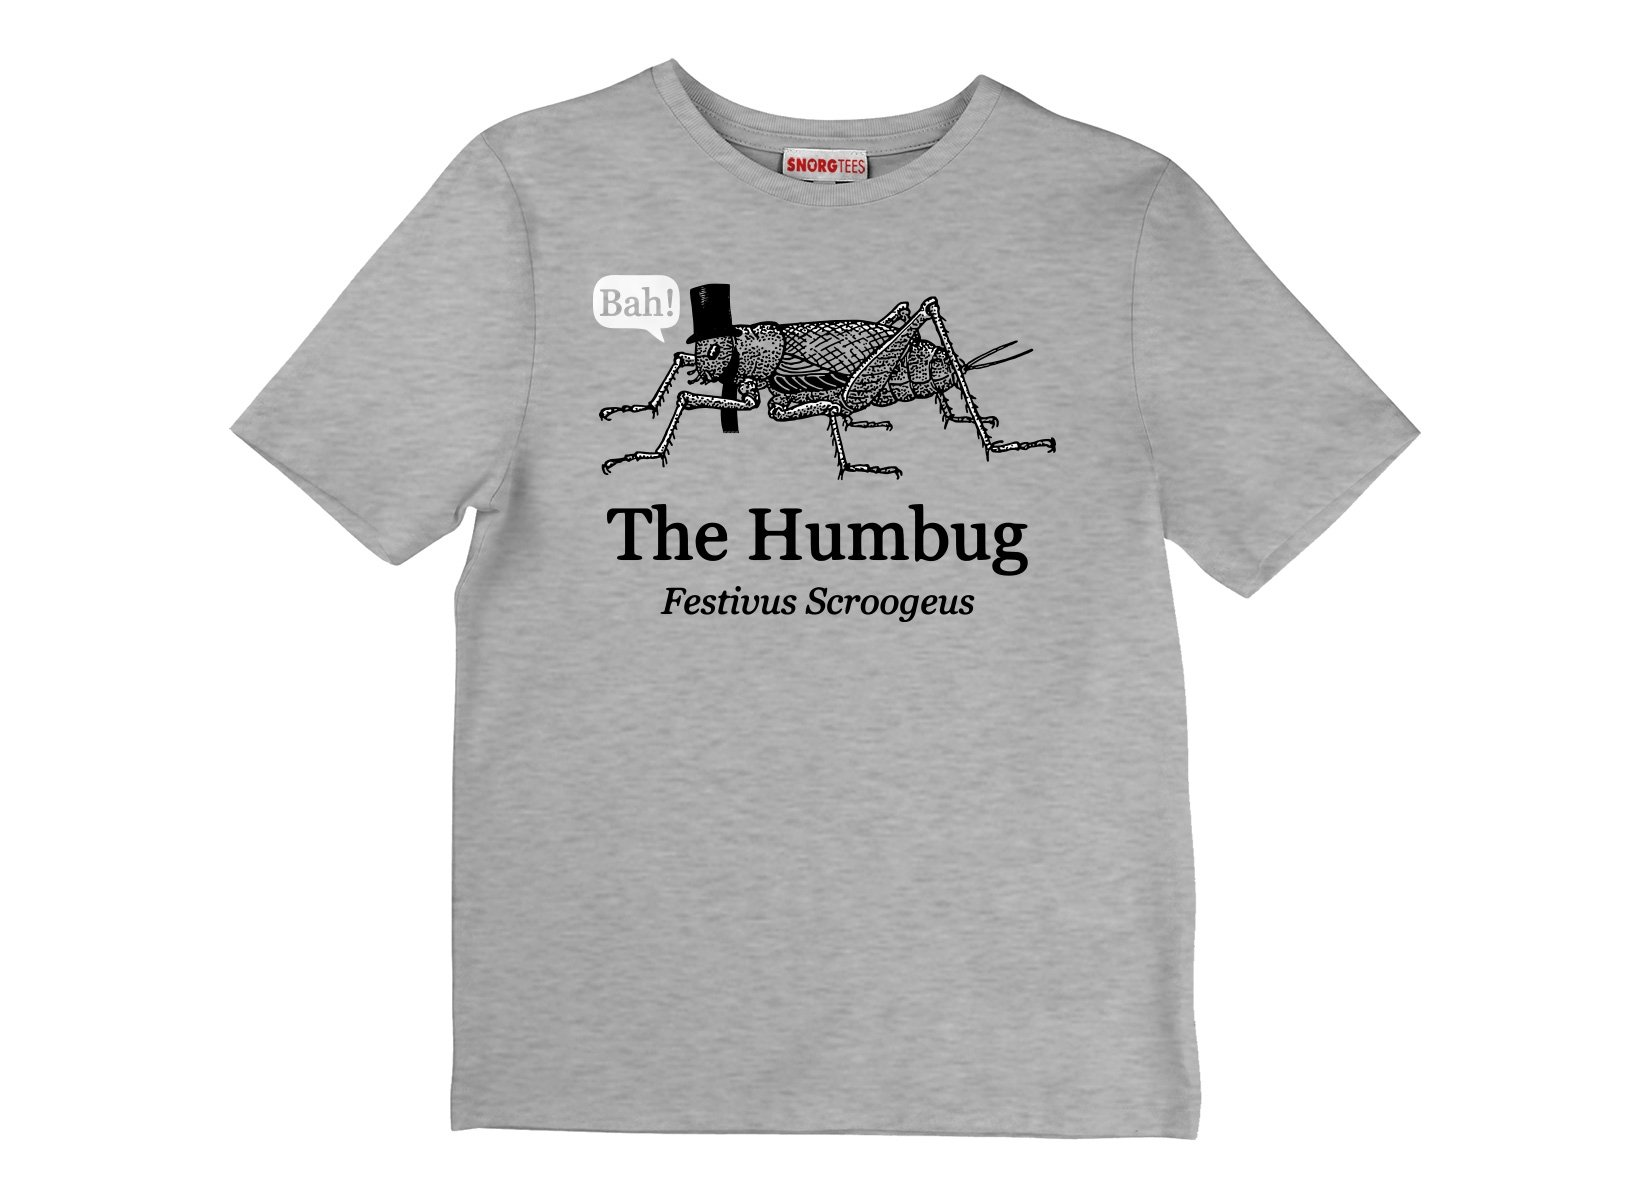 The Humbug on Kids T-Shirt